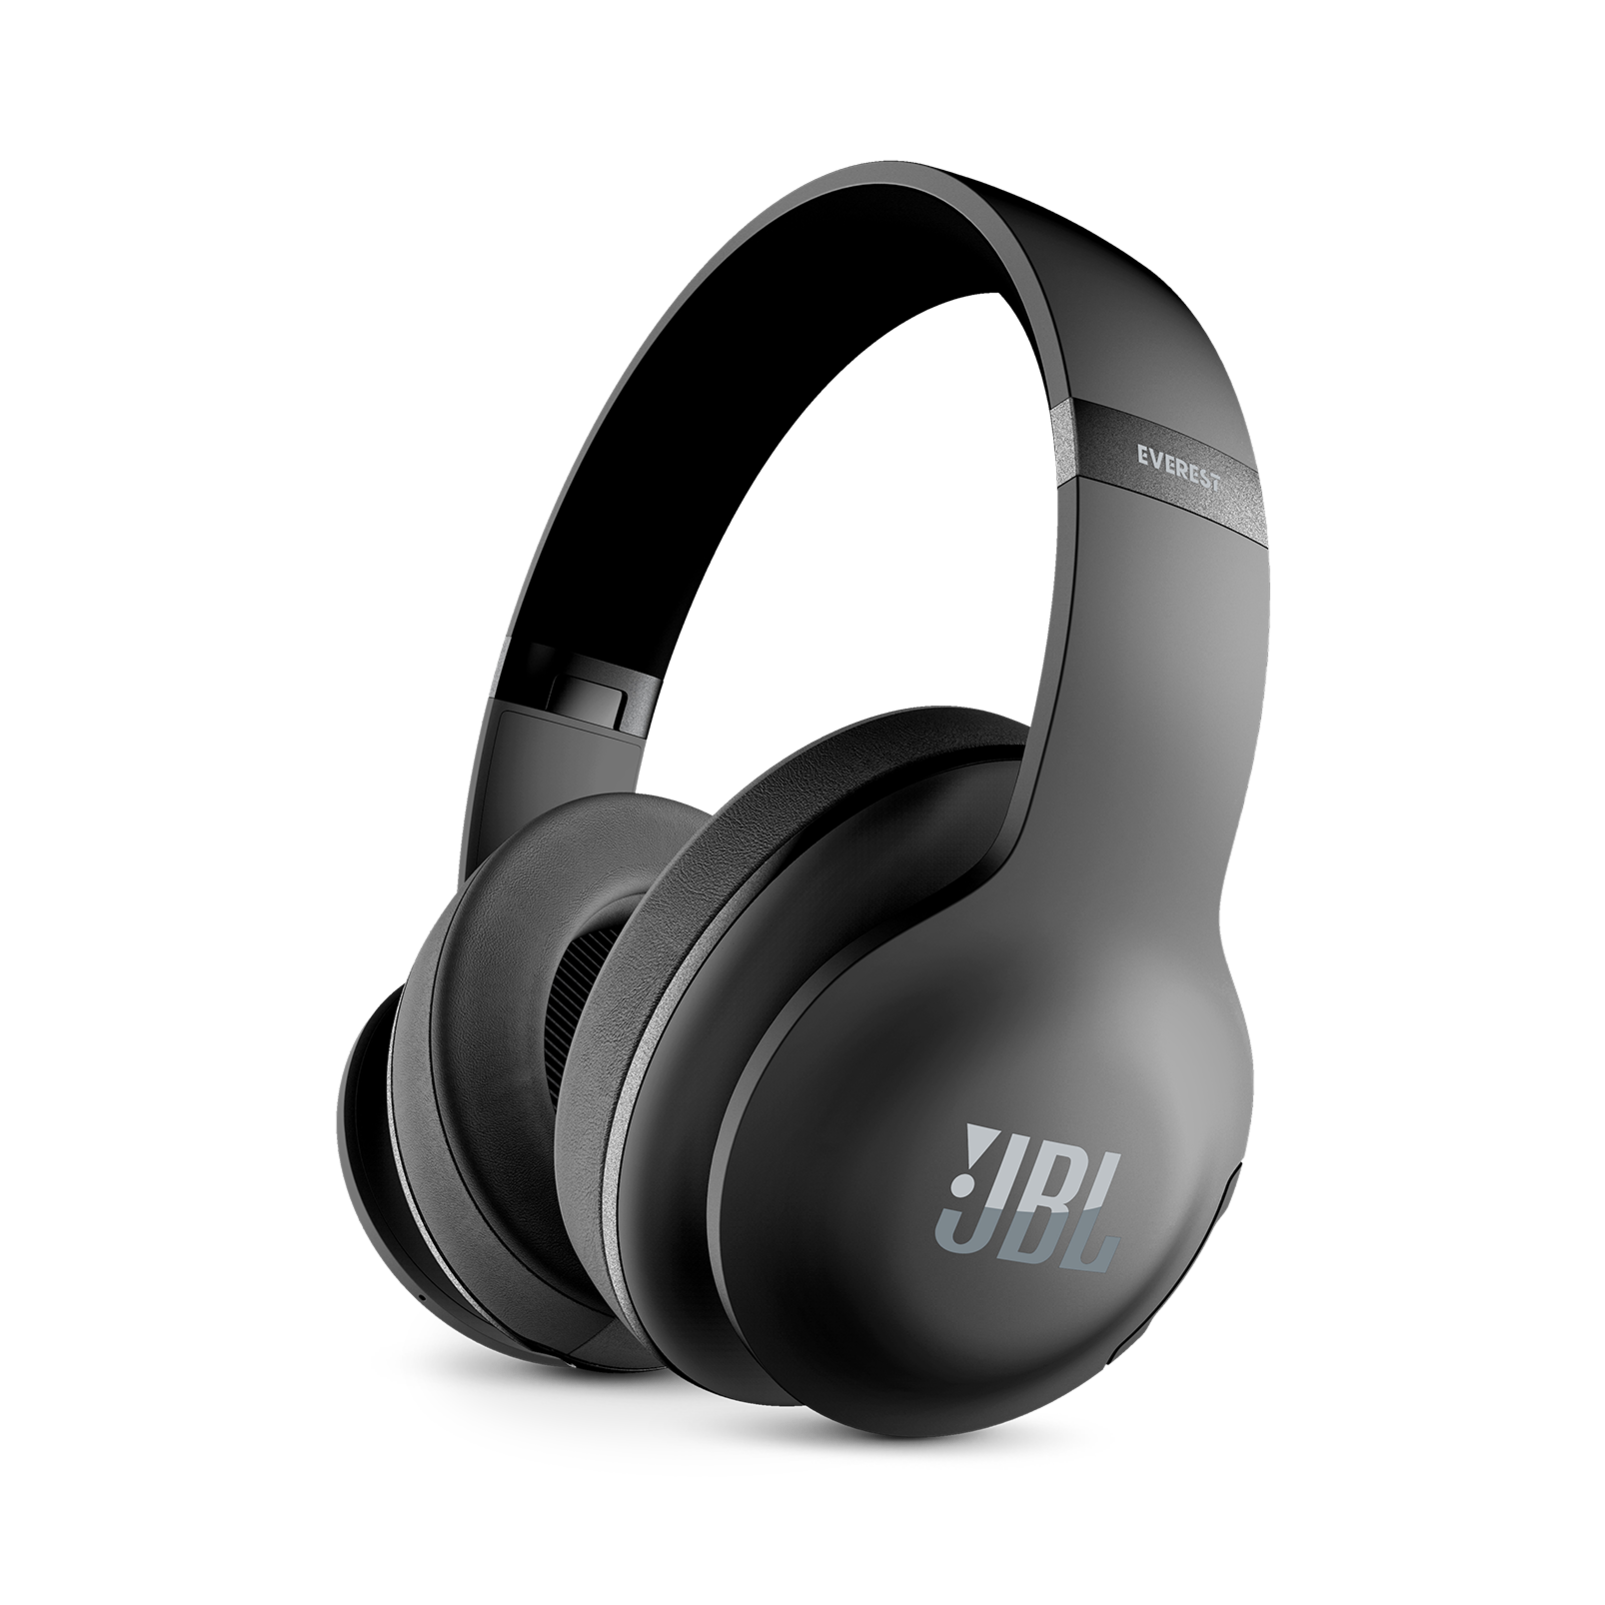 JBL Everest Elite 700 Bluetooth Around-Ear Headphones (Refurb, Black or White) $90 + Free Shipping